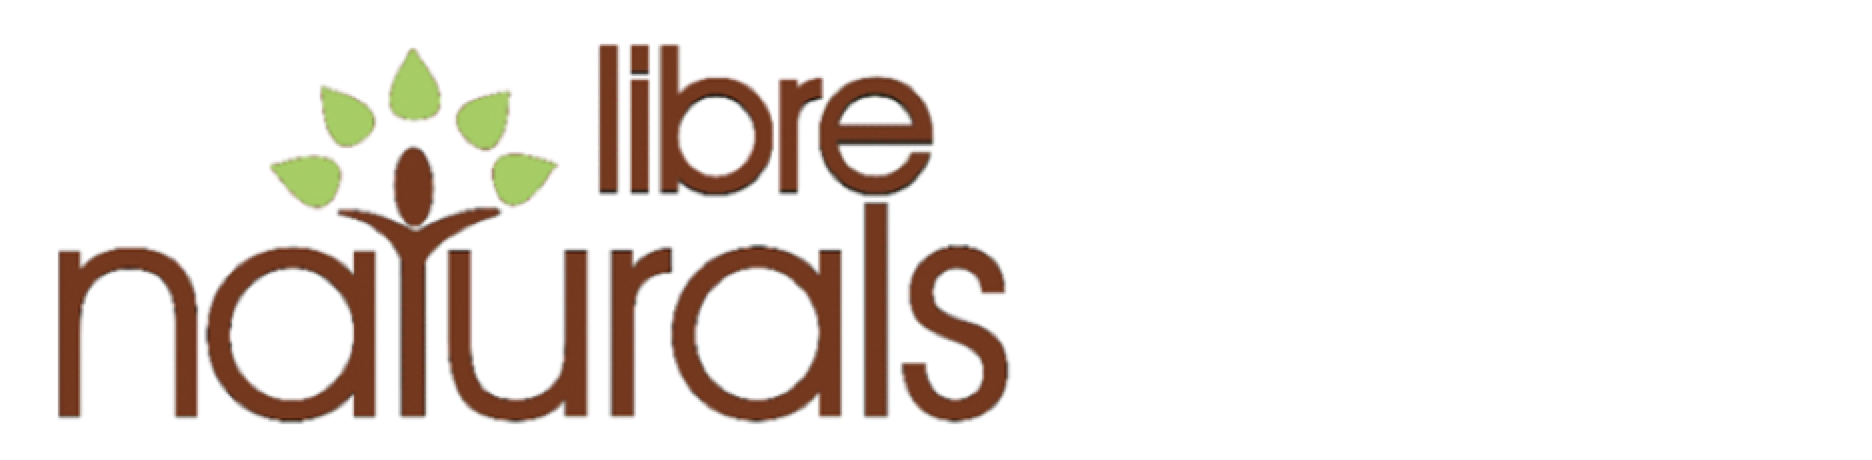 "LIBRE NATURALS - Libre Naturals is a snacks and cereals company that makes food ""free from"" the top 10 allergens in their own facility in Canada. Visit www.librenaturals.com for more information."